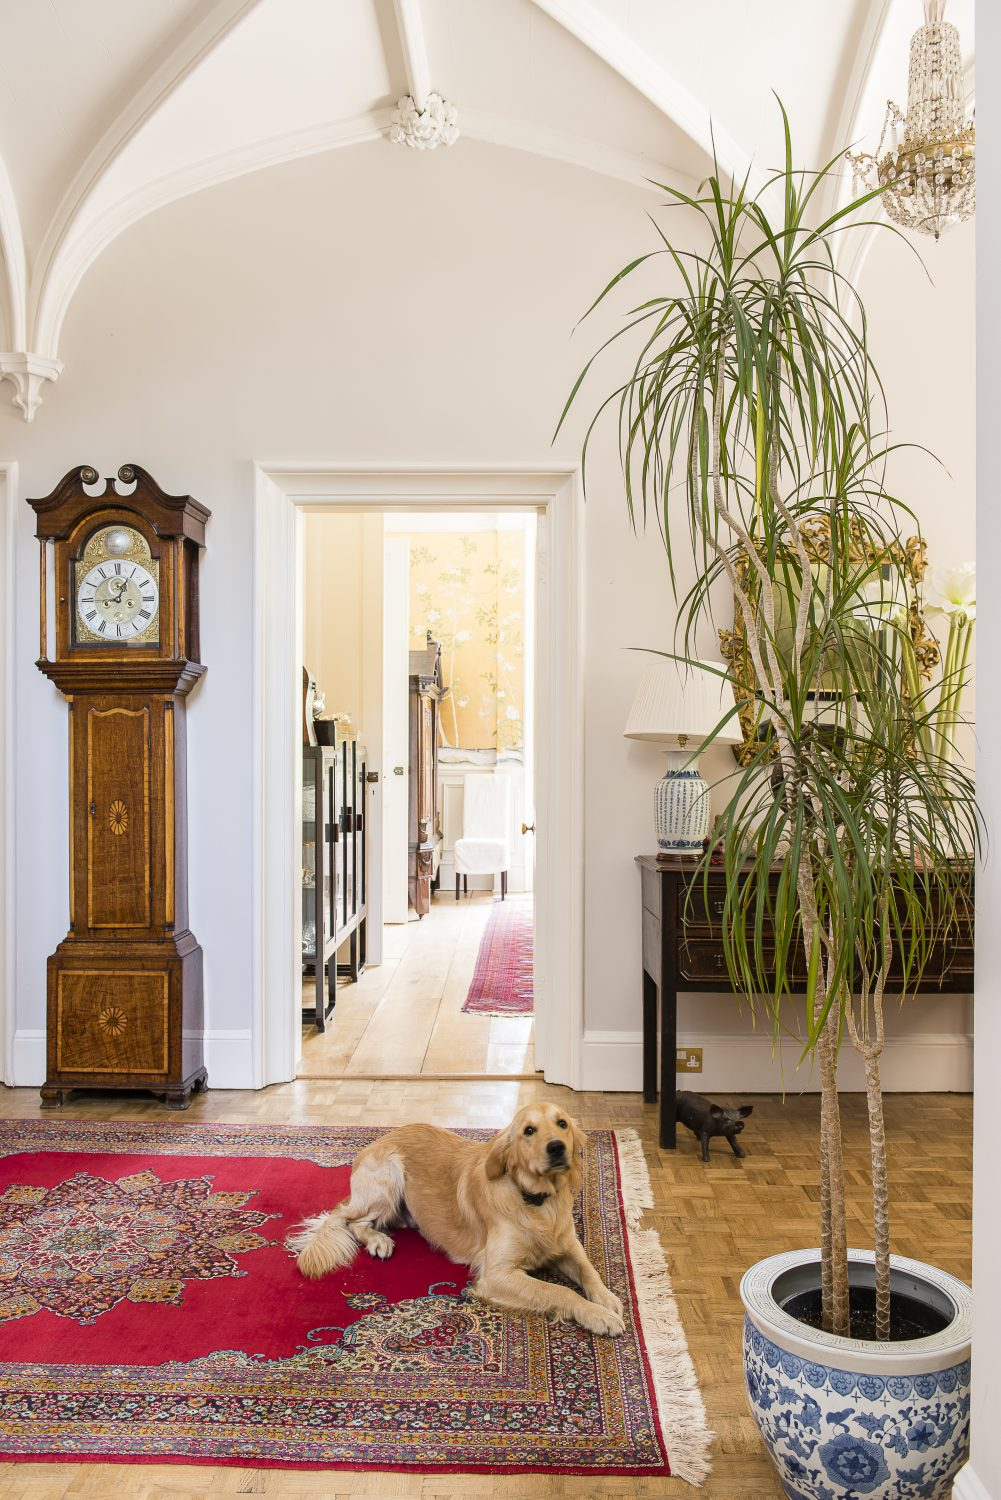 Potato the dog in the hall with vaulted ceilings in the Gothic Revival style